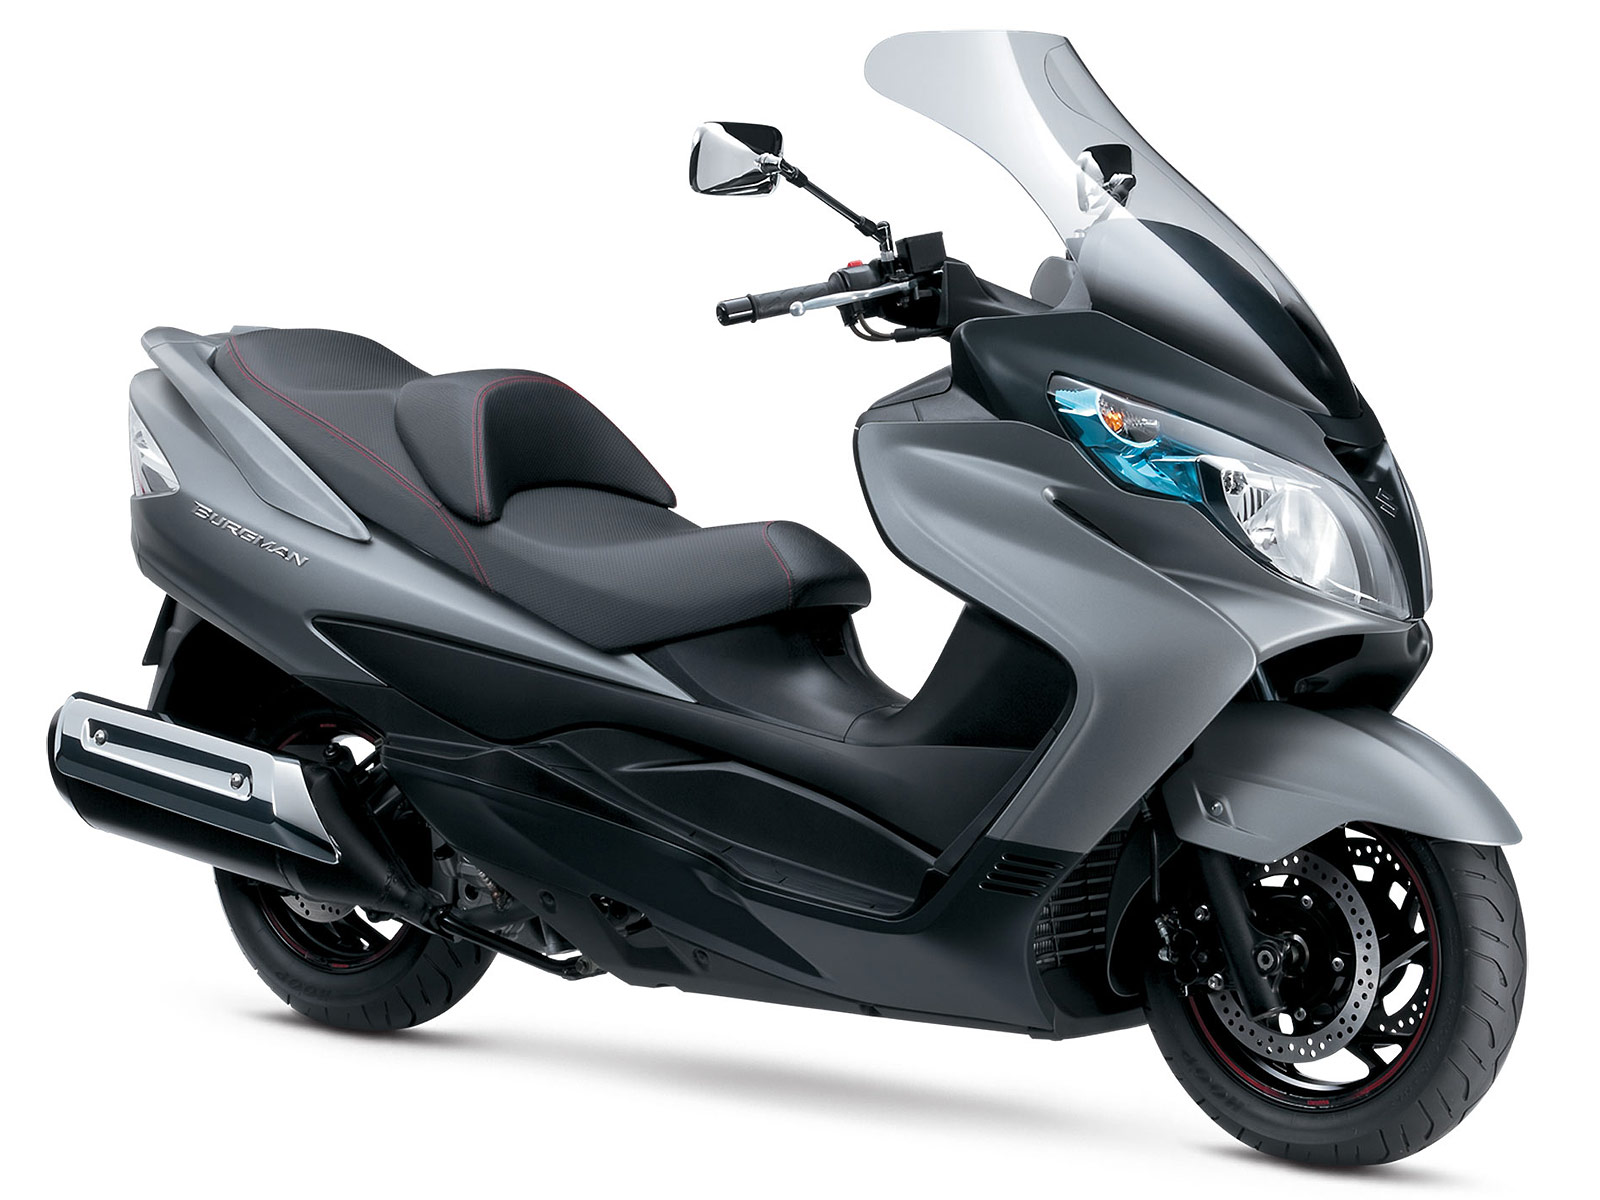 2013 suzuki burgman 400 abs scooter insurance information pictures. Black Bedroom Furniture Sets. Home Design Ideas